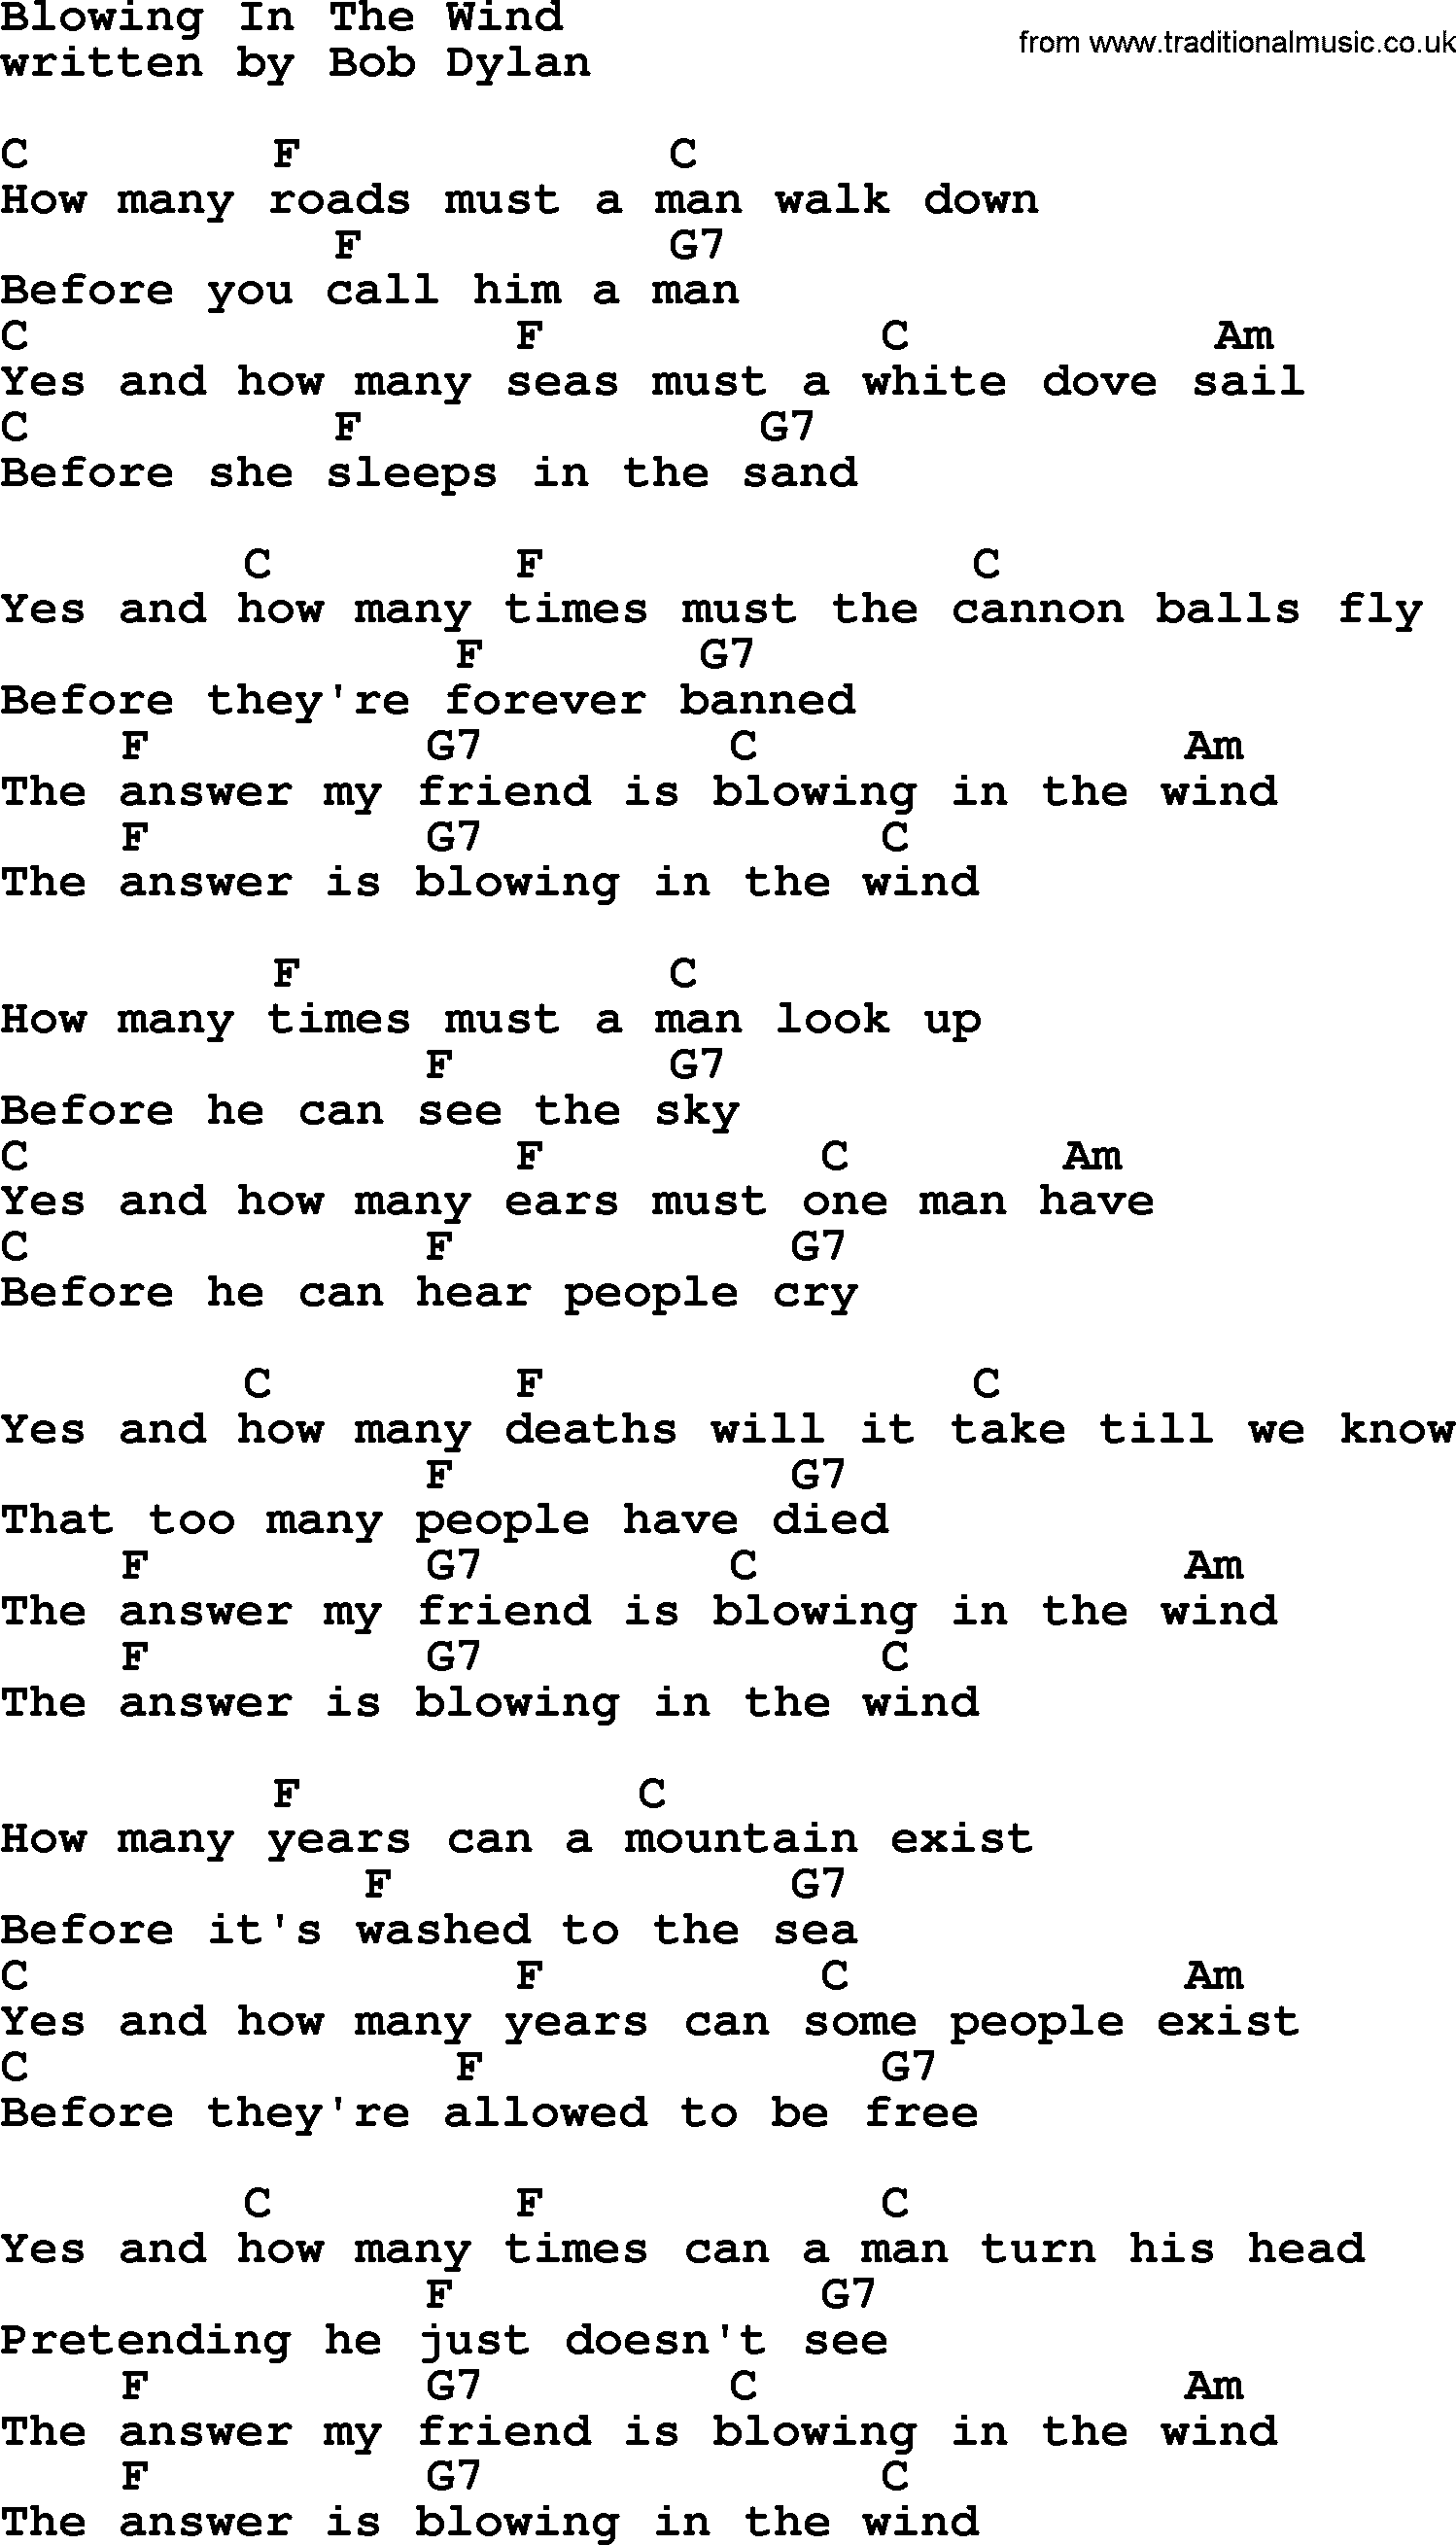 blowing in the wind chords lyrics